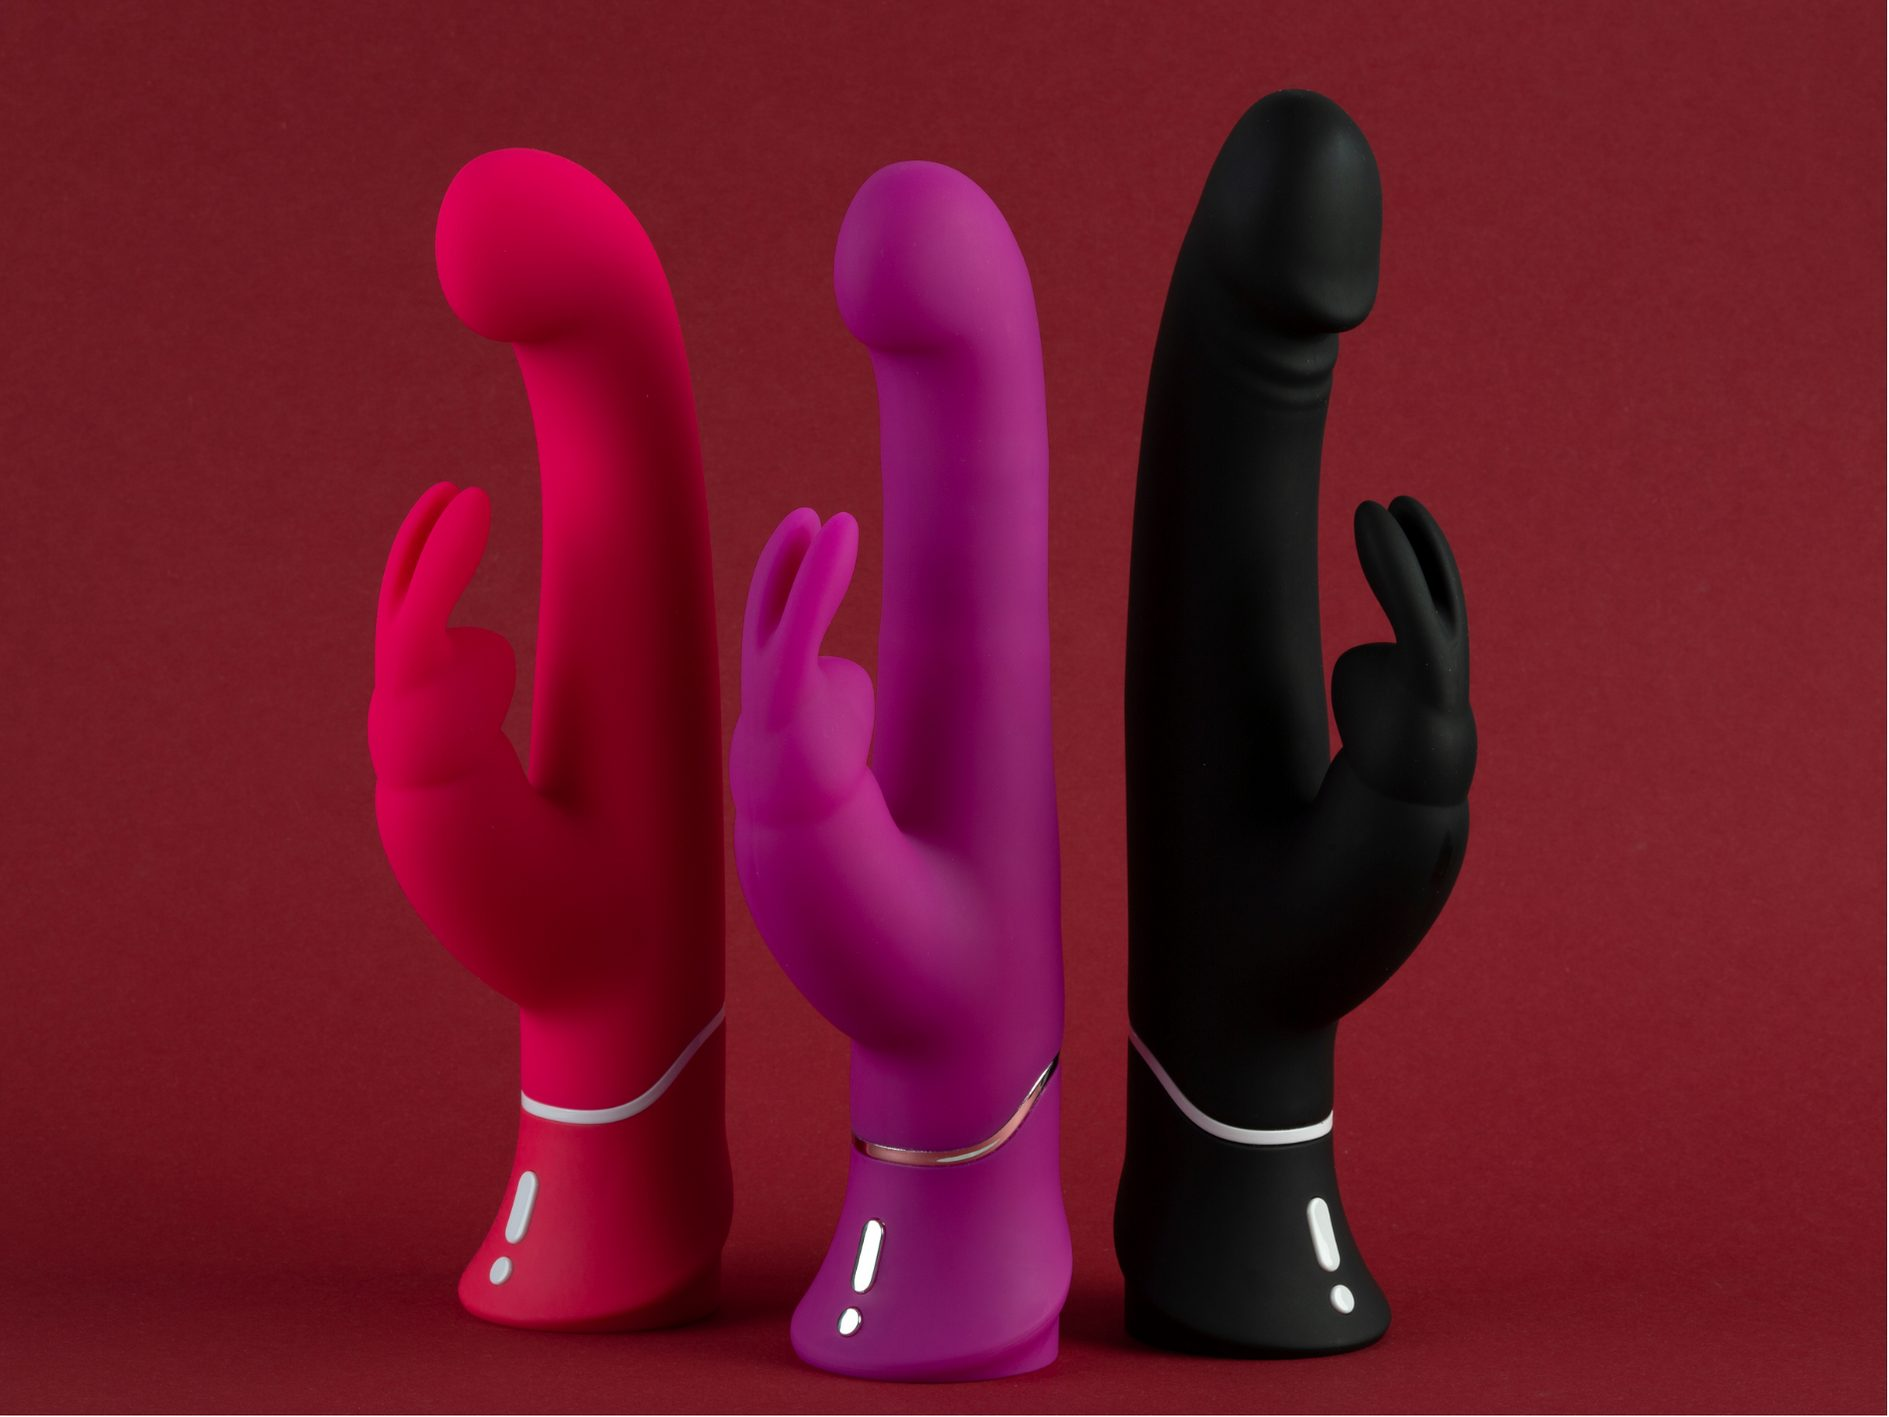 [Toy Review] Happy Rabbit Realistic Rechargeable Rabbit Vibrator by Lovehoney